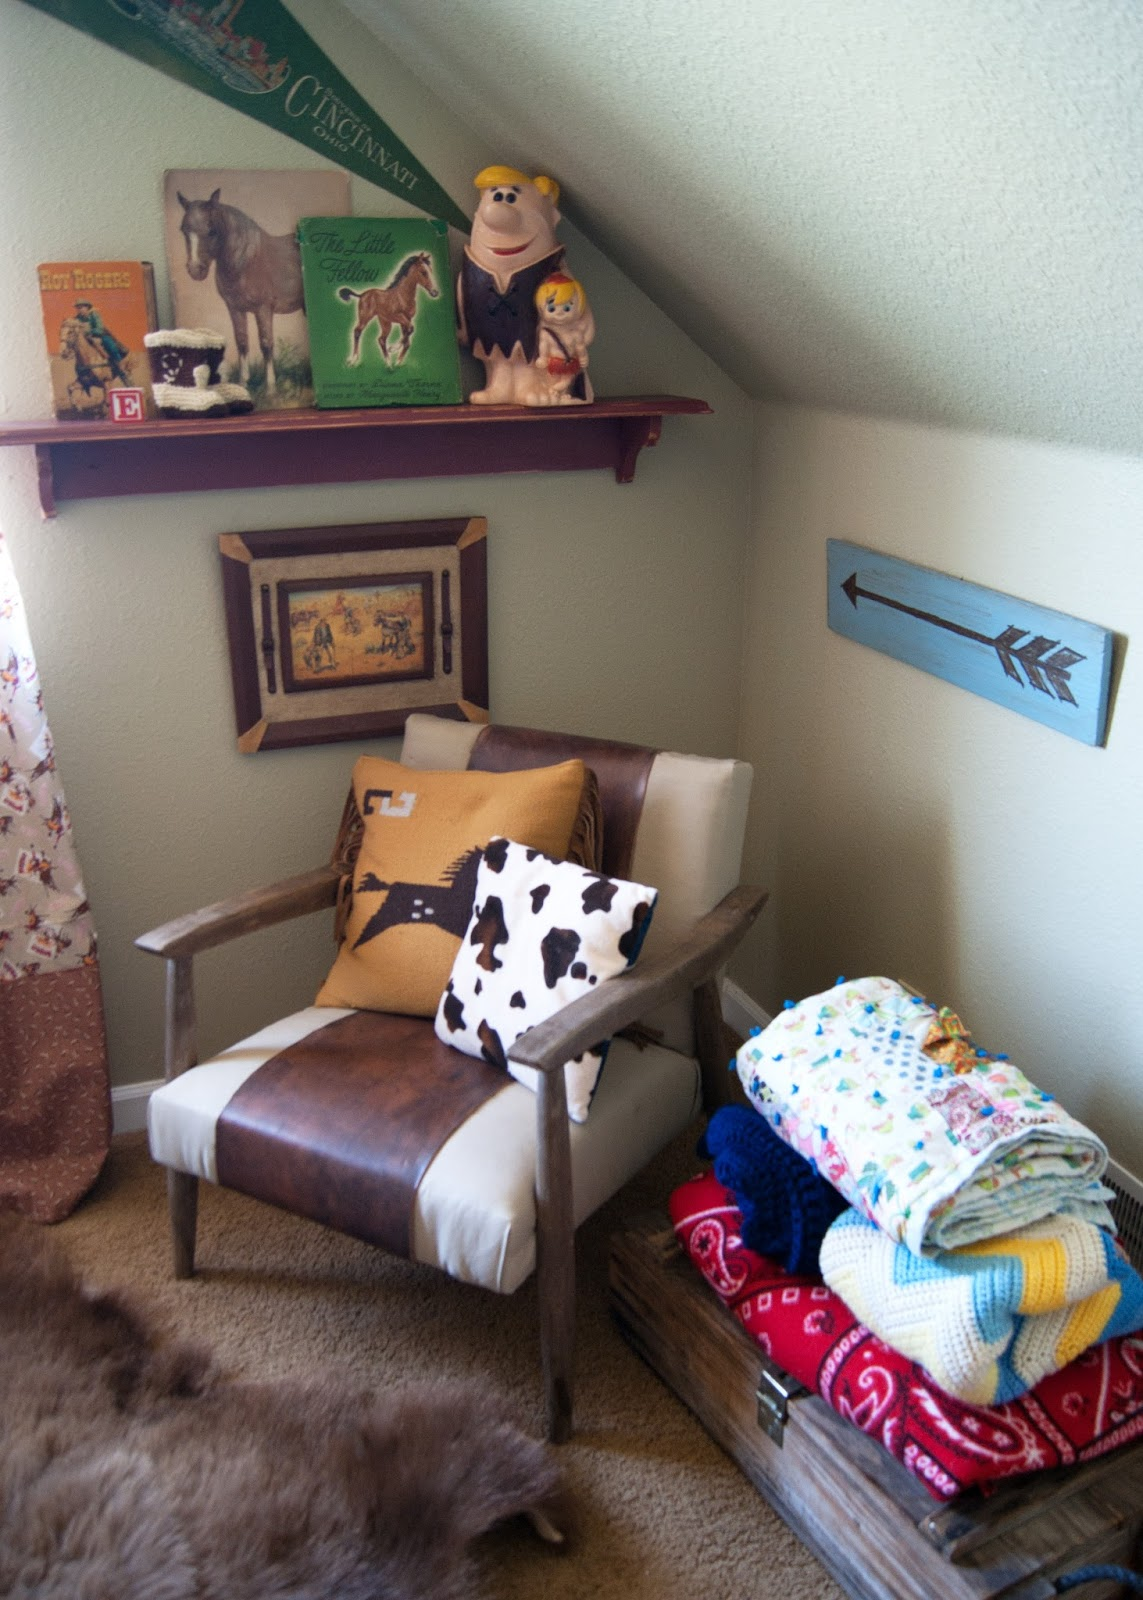 Cozy reading corner in Western Bedroom - mid century chair, blankets and arrow sign